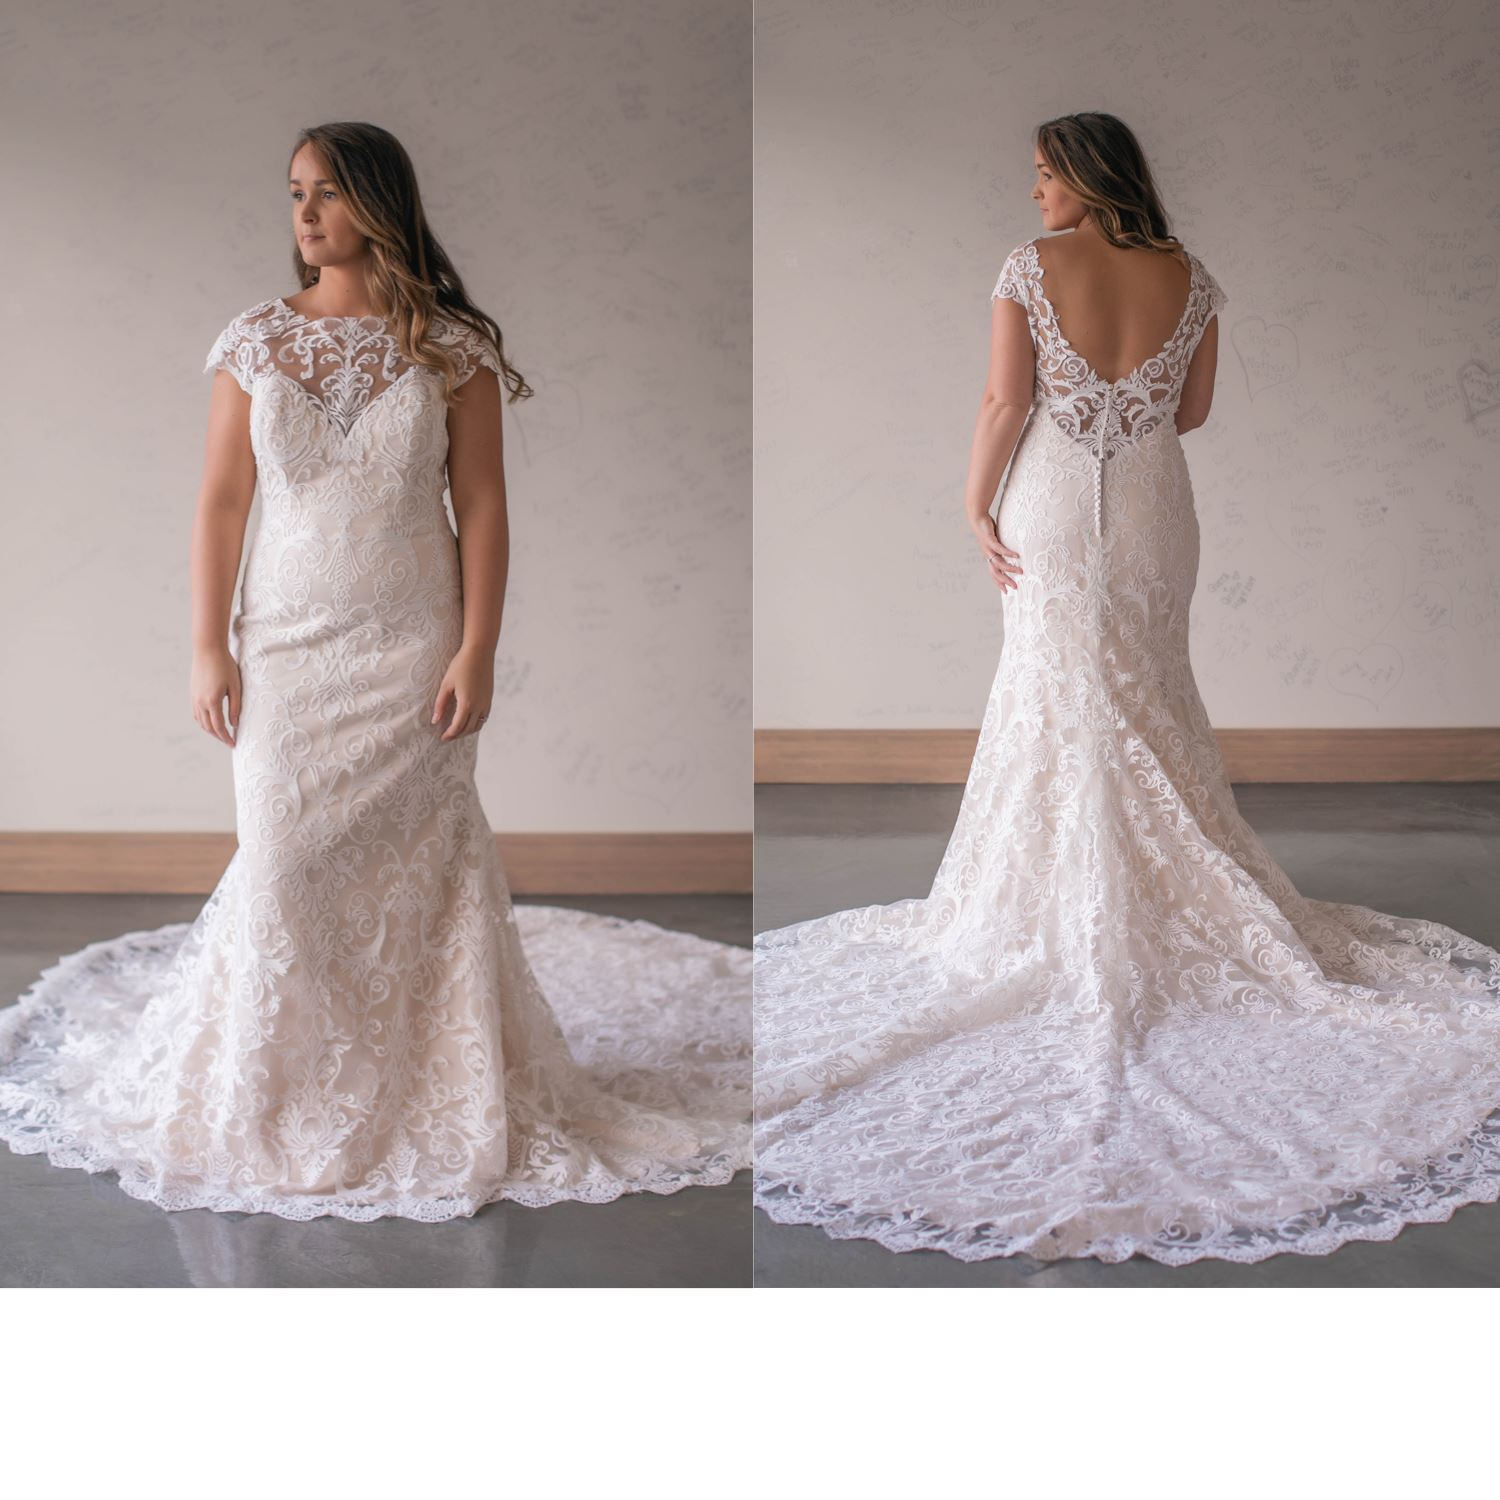 Margret - Size 16 - Ivory/Lt Nude - Originally priced $1699 - Sample box price $1499